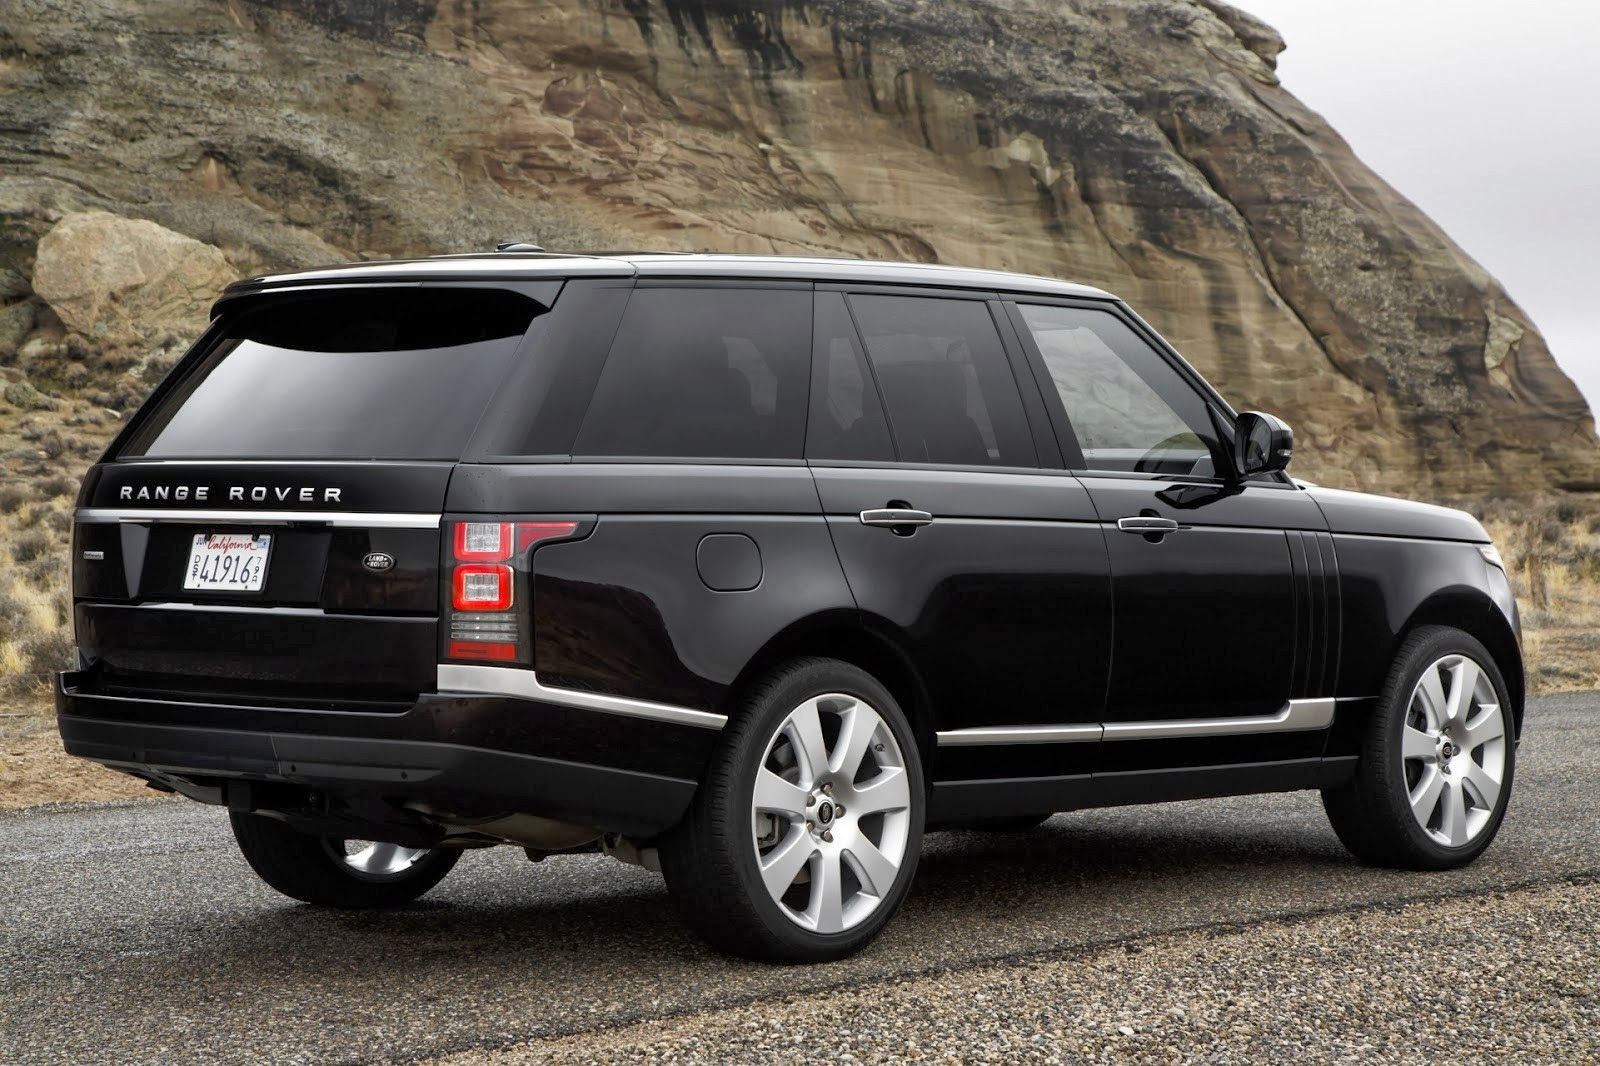 range rover autobiography edition prices photos just welcome to automotive. Black Bedroom Furniture Sets. Home Design Ideas